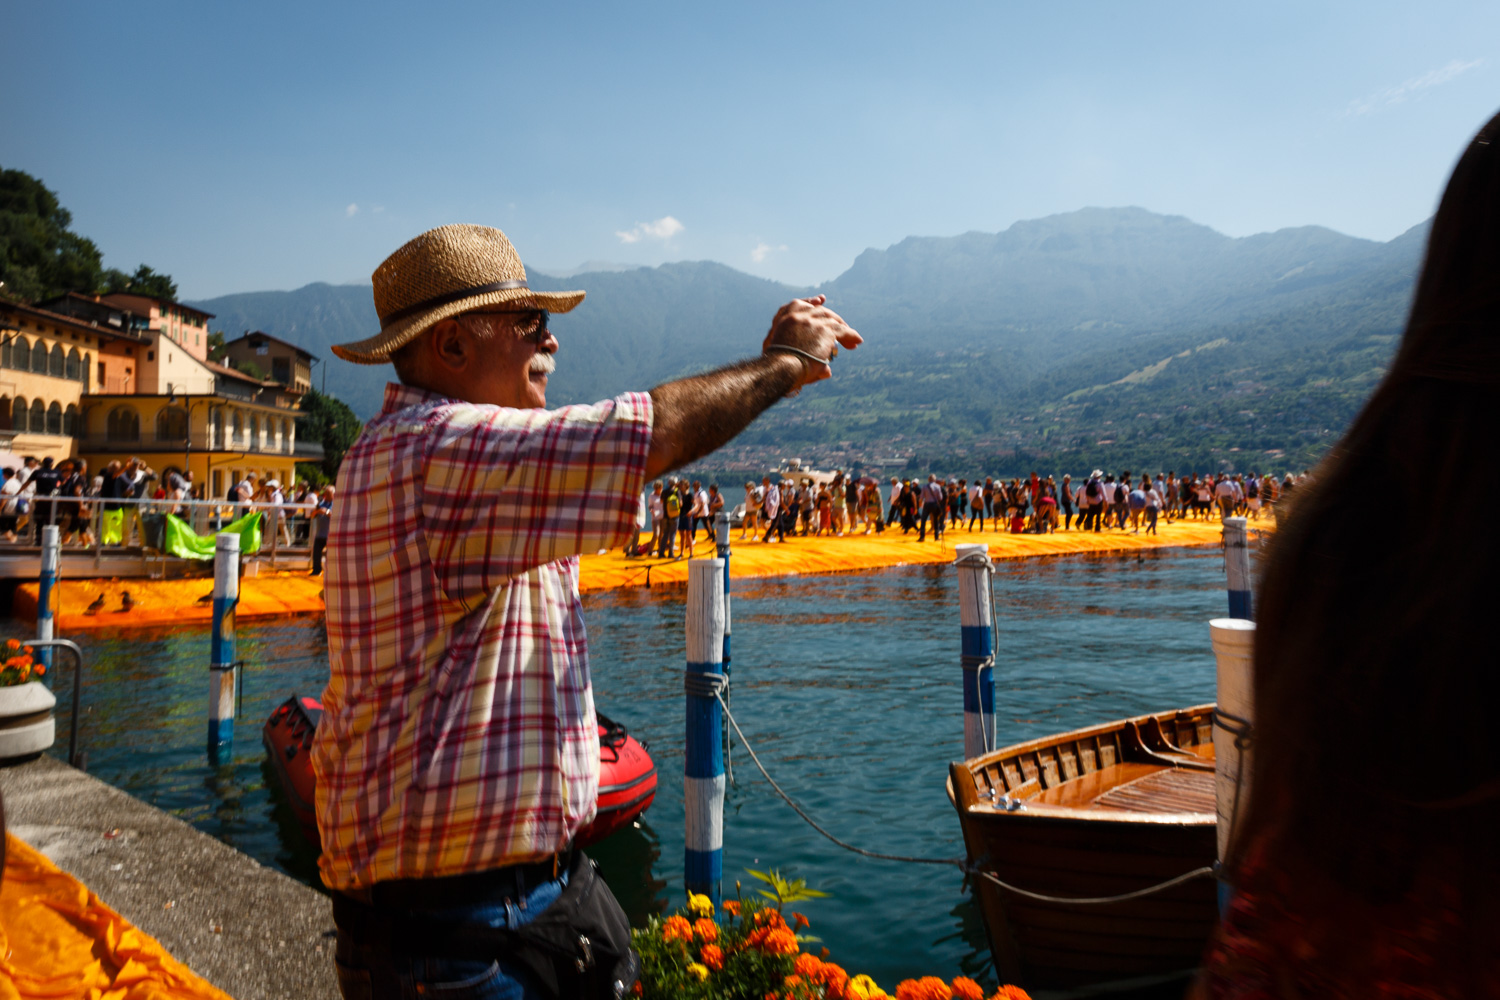 The Floating Piers - Man taking a Picture